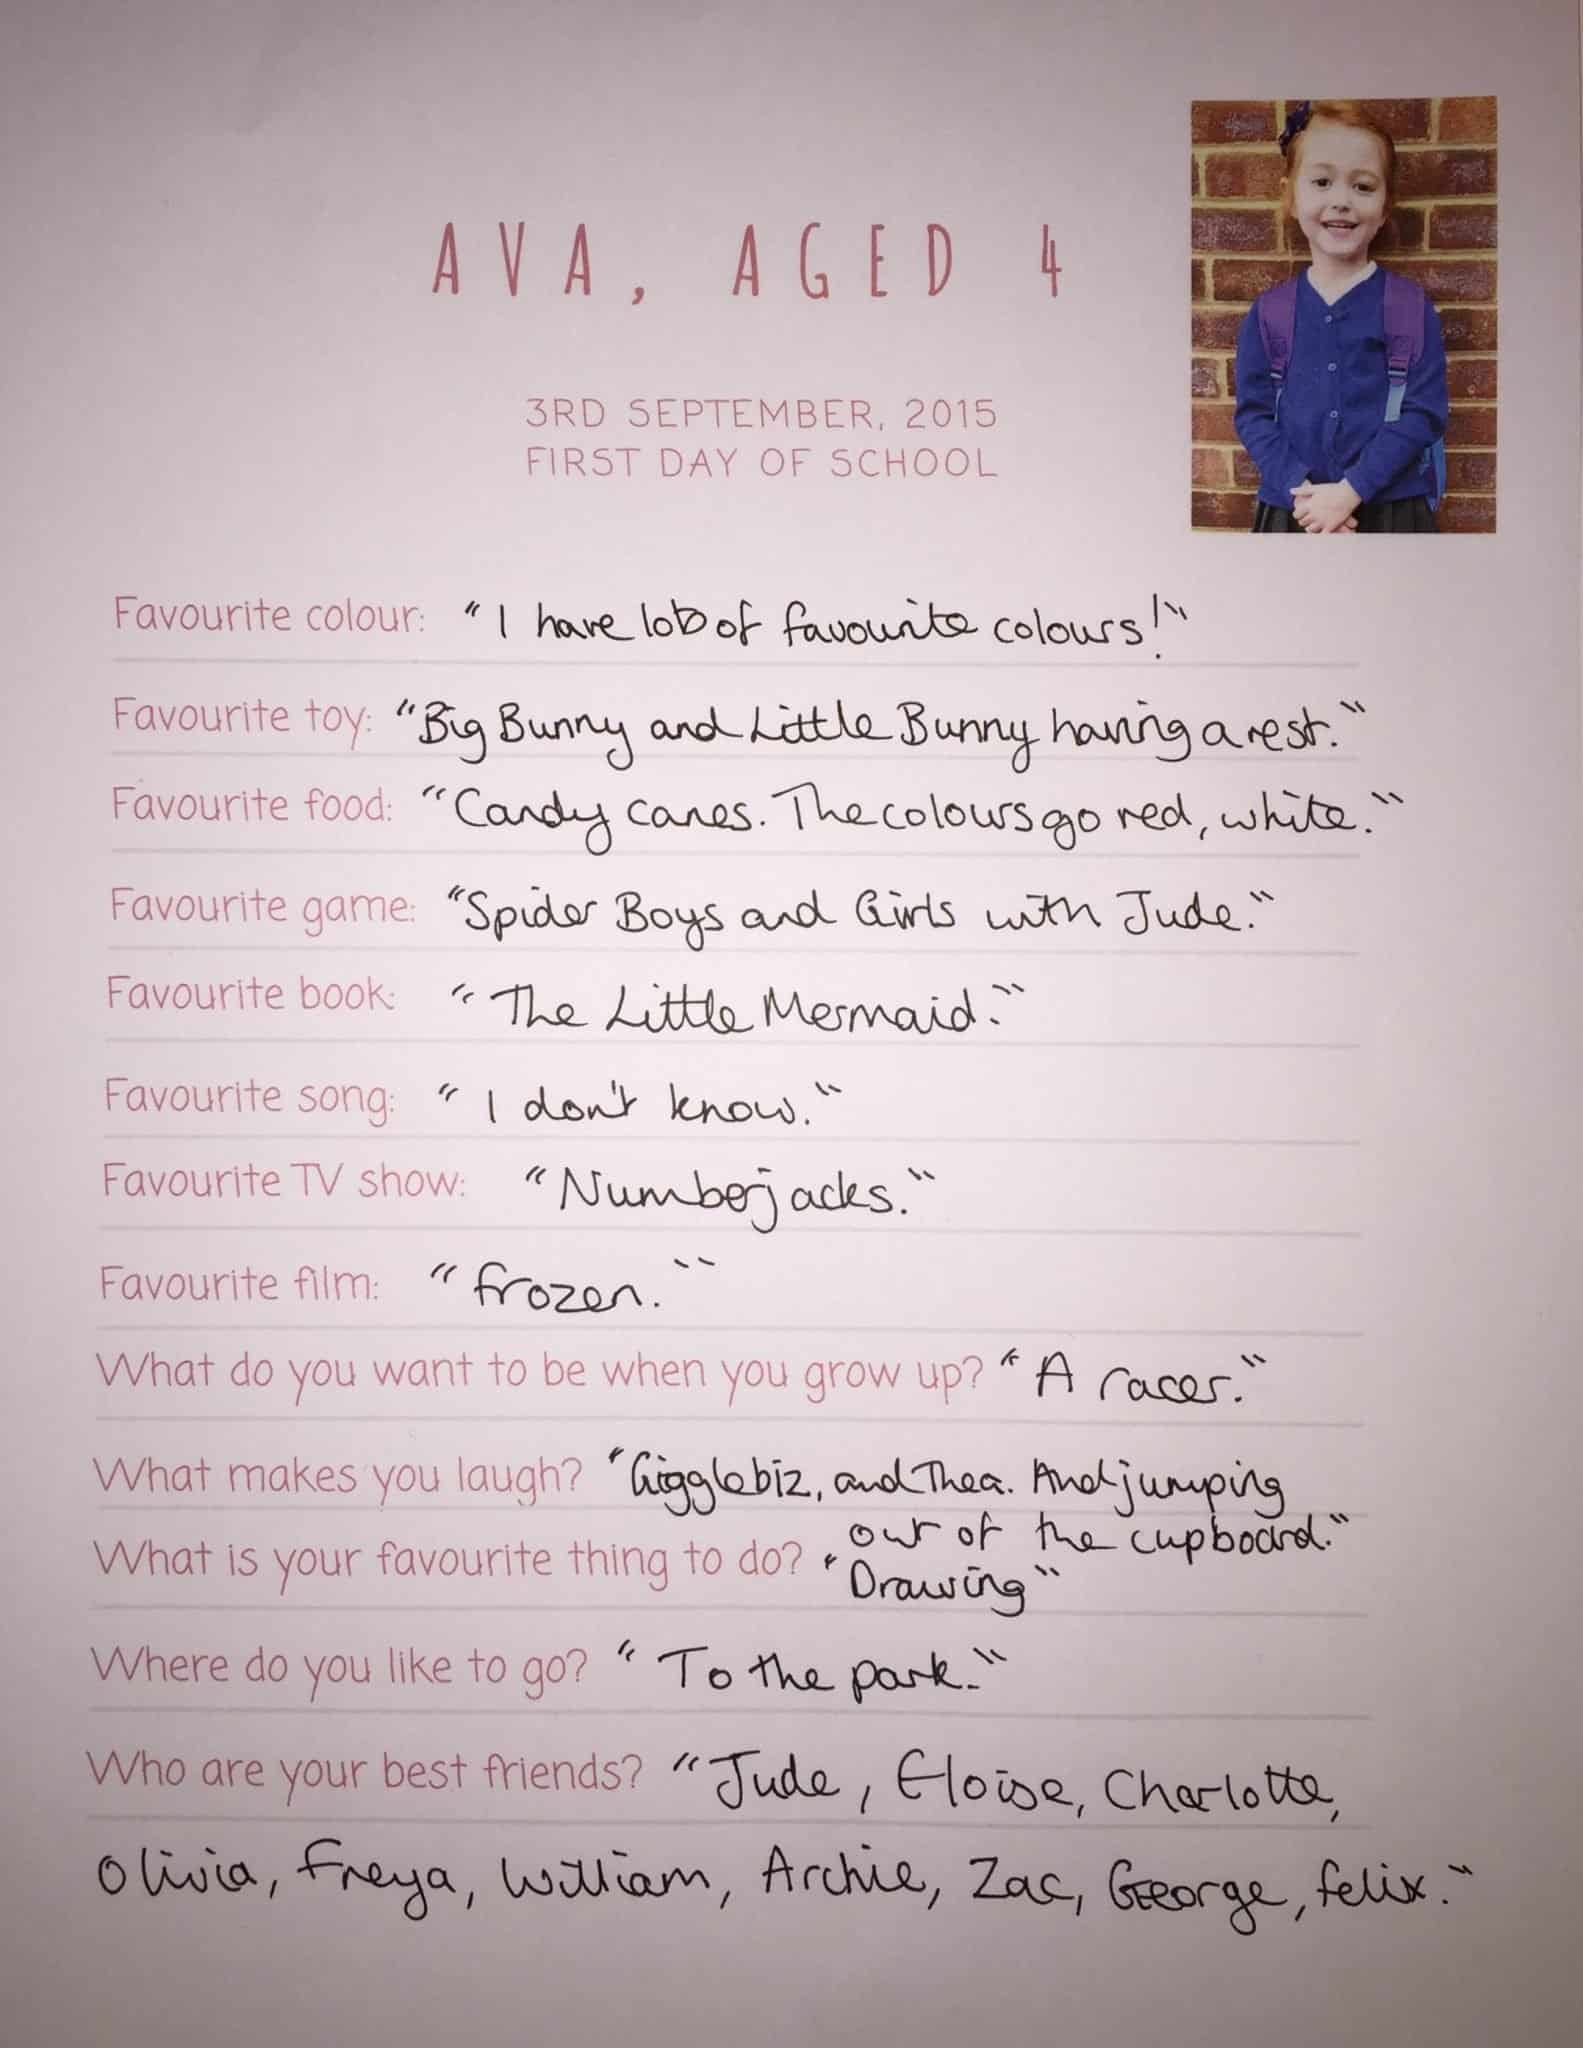 Ava's first day at school questionnaire